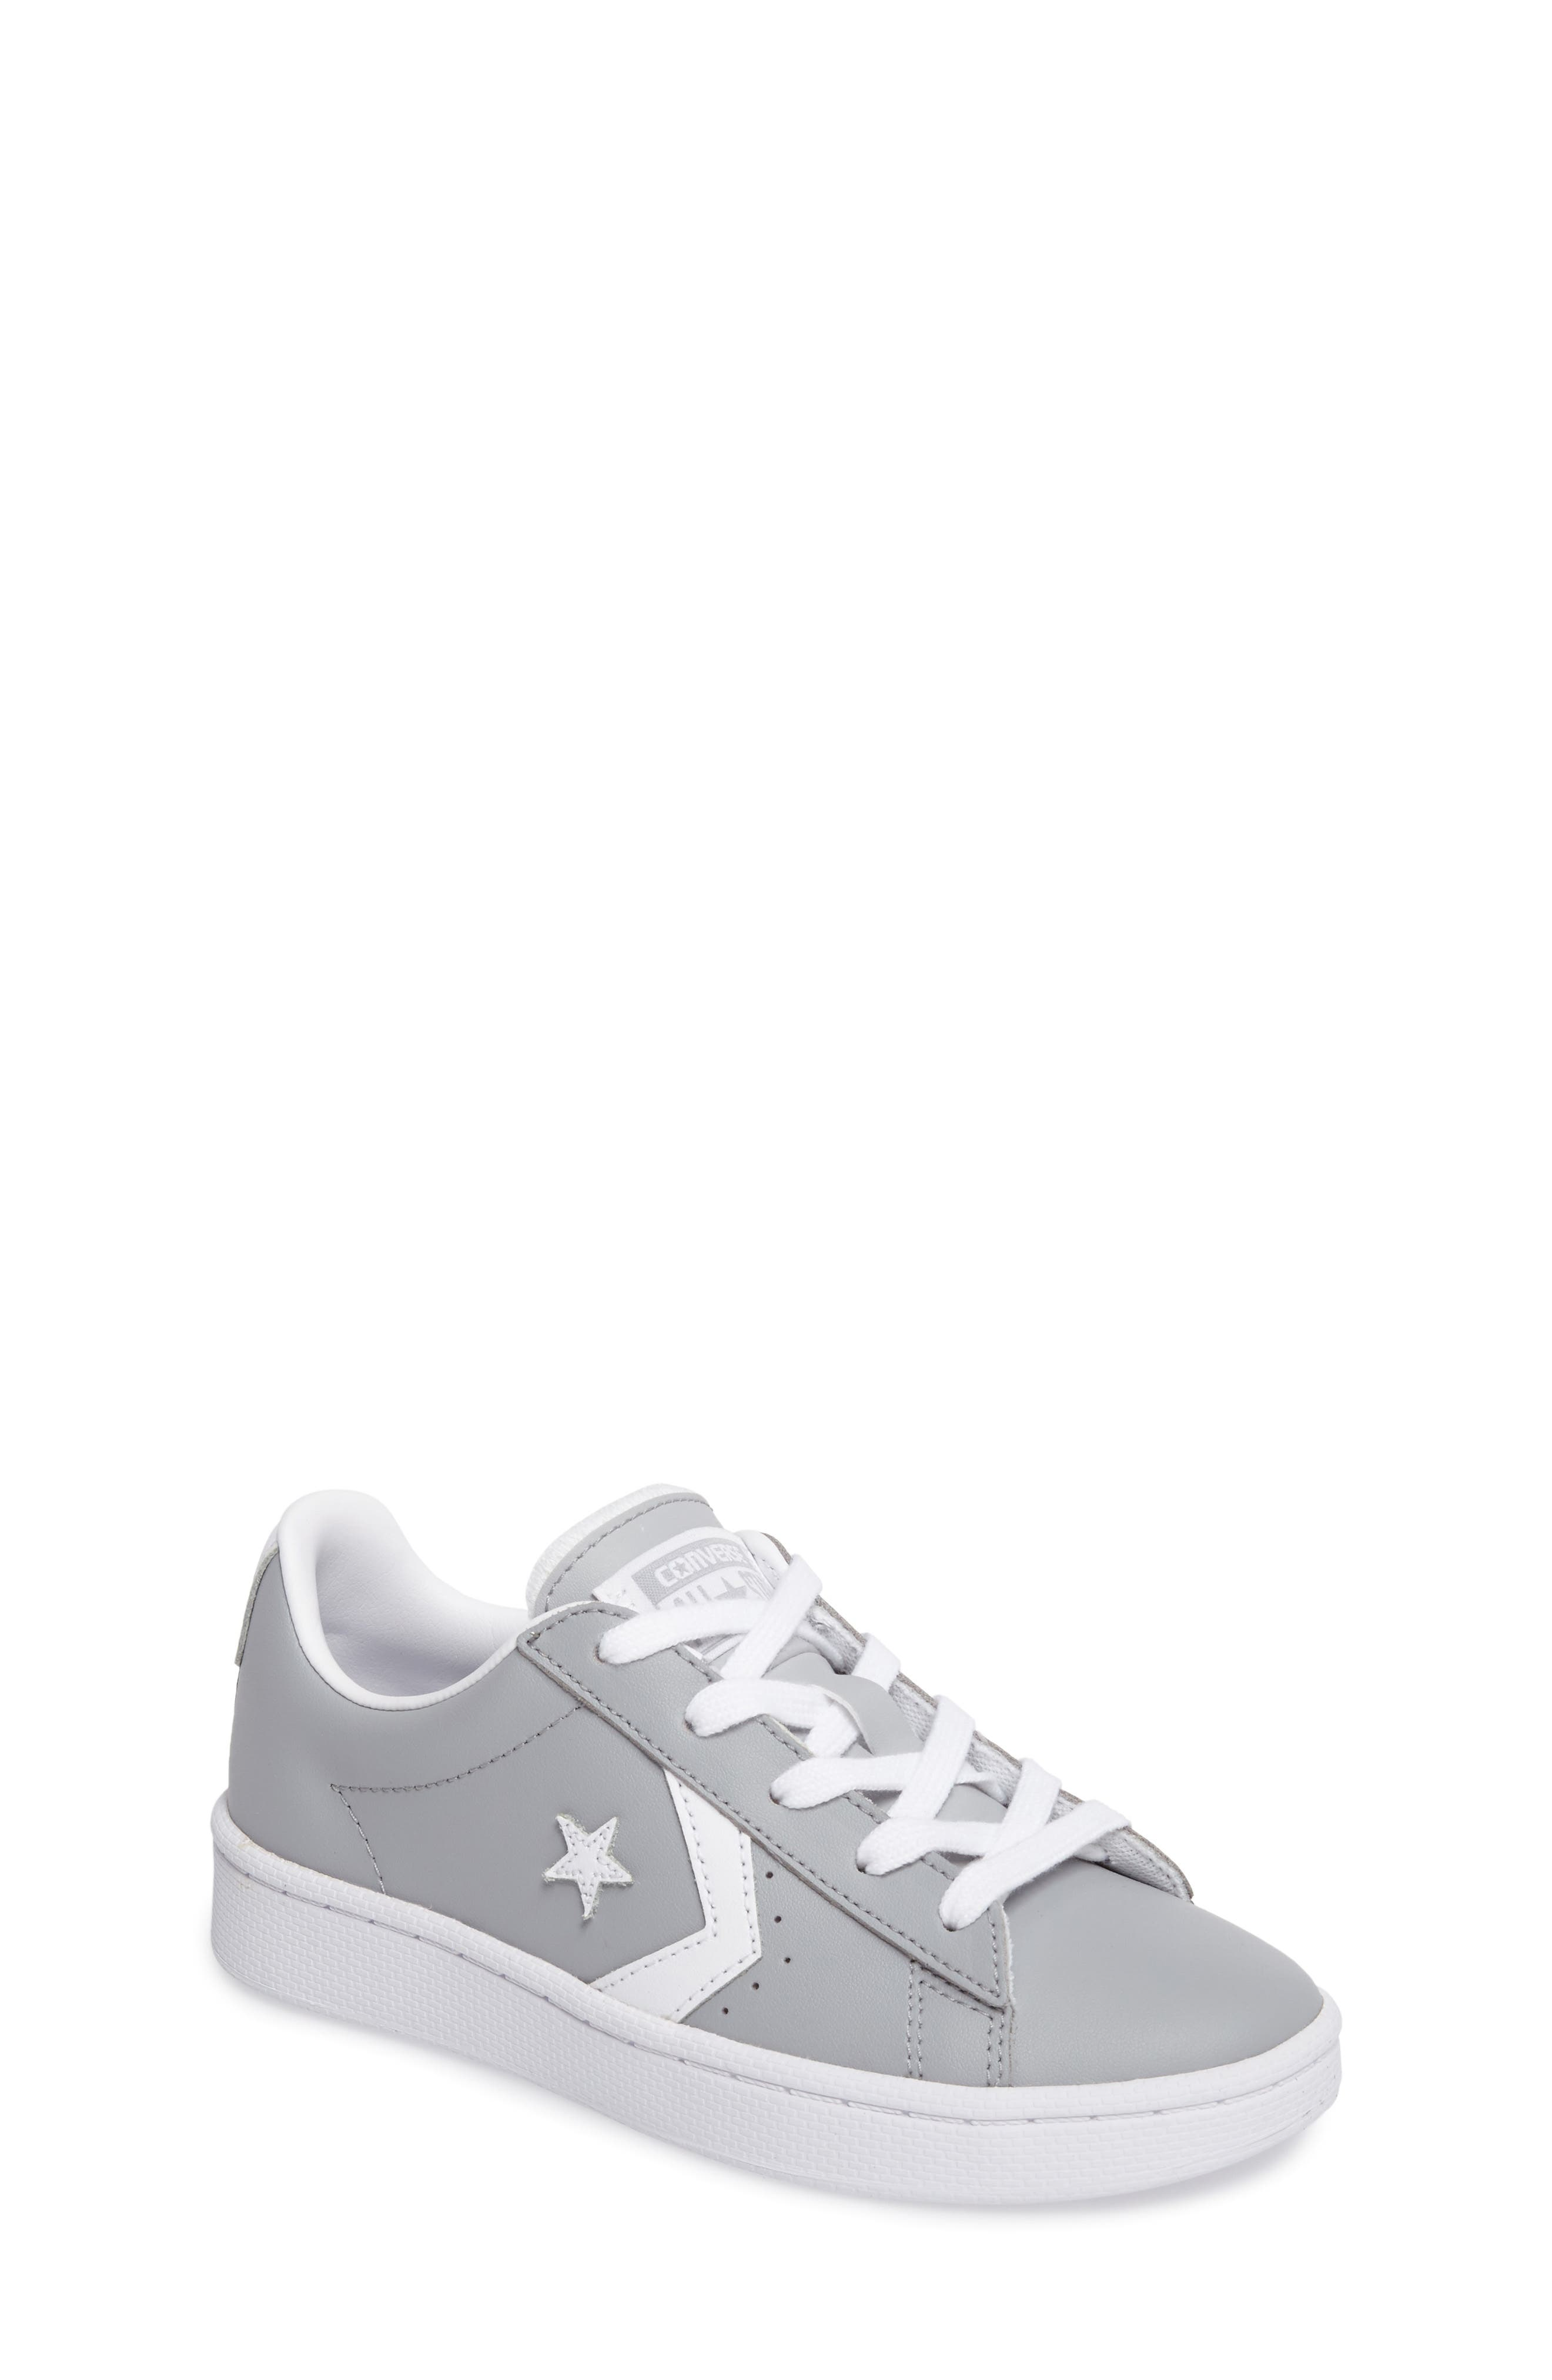 All Star<sup>®</sup> Pro Leather Low Top Sneaker,                             Main thumbnail 1, color,                             097